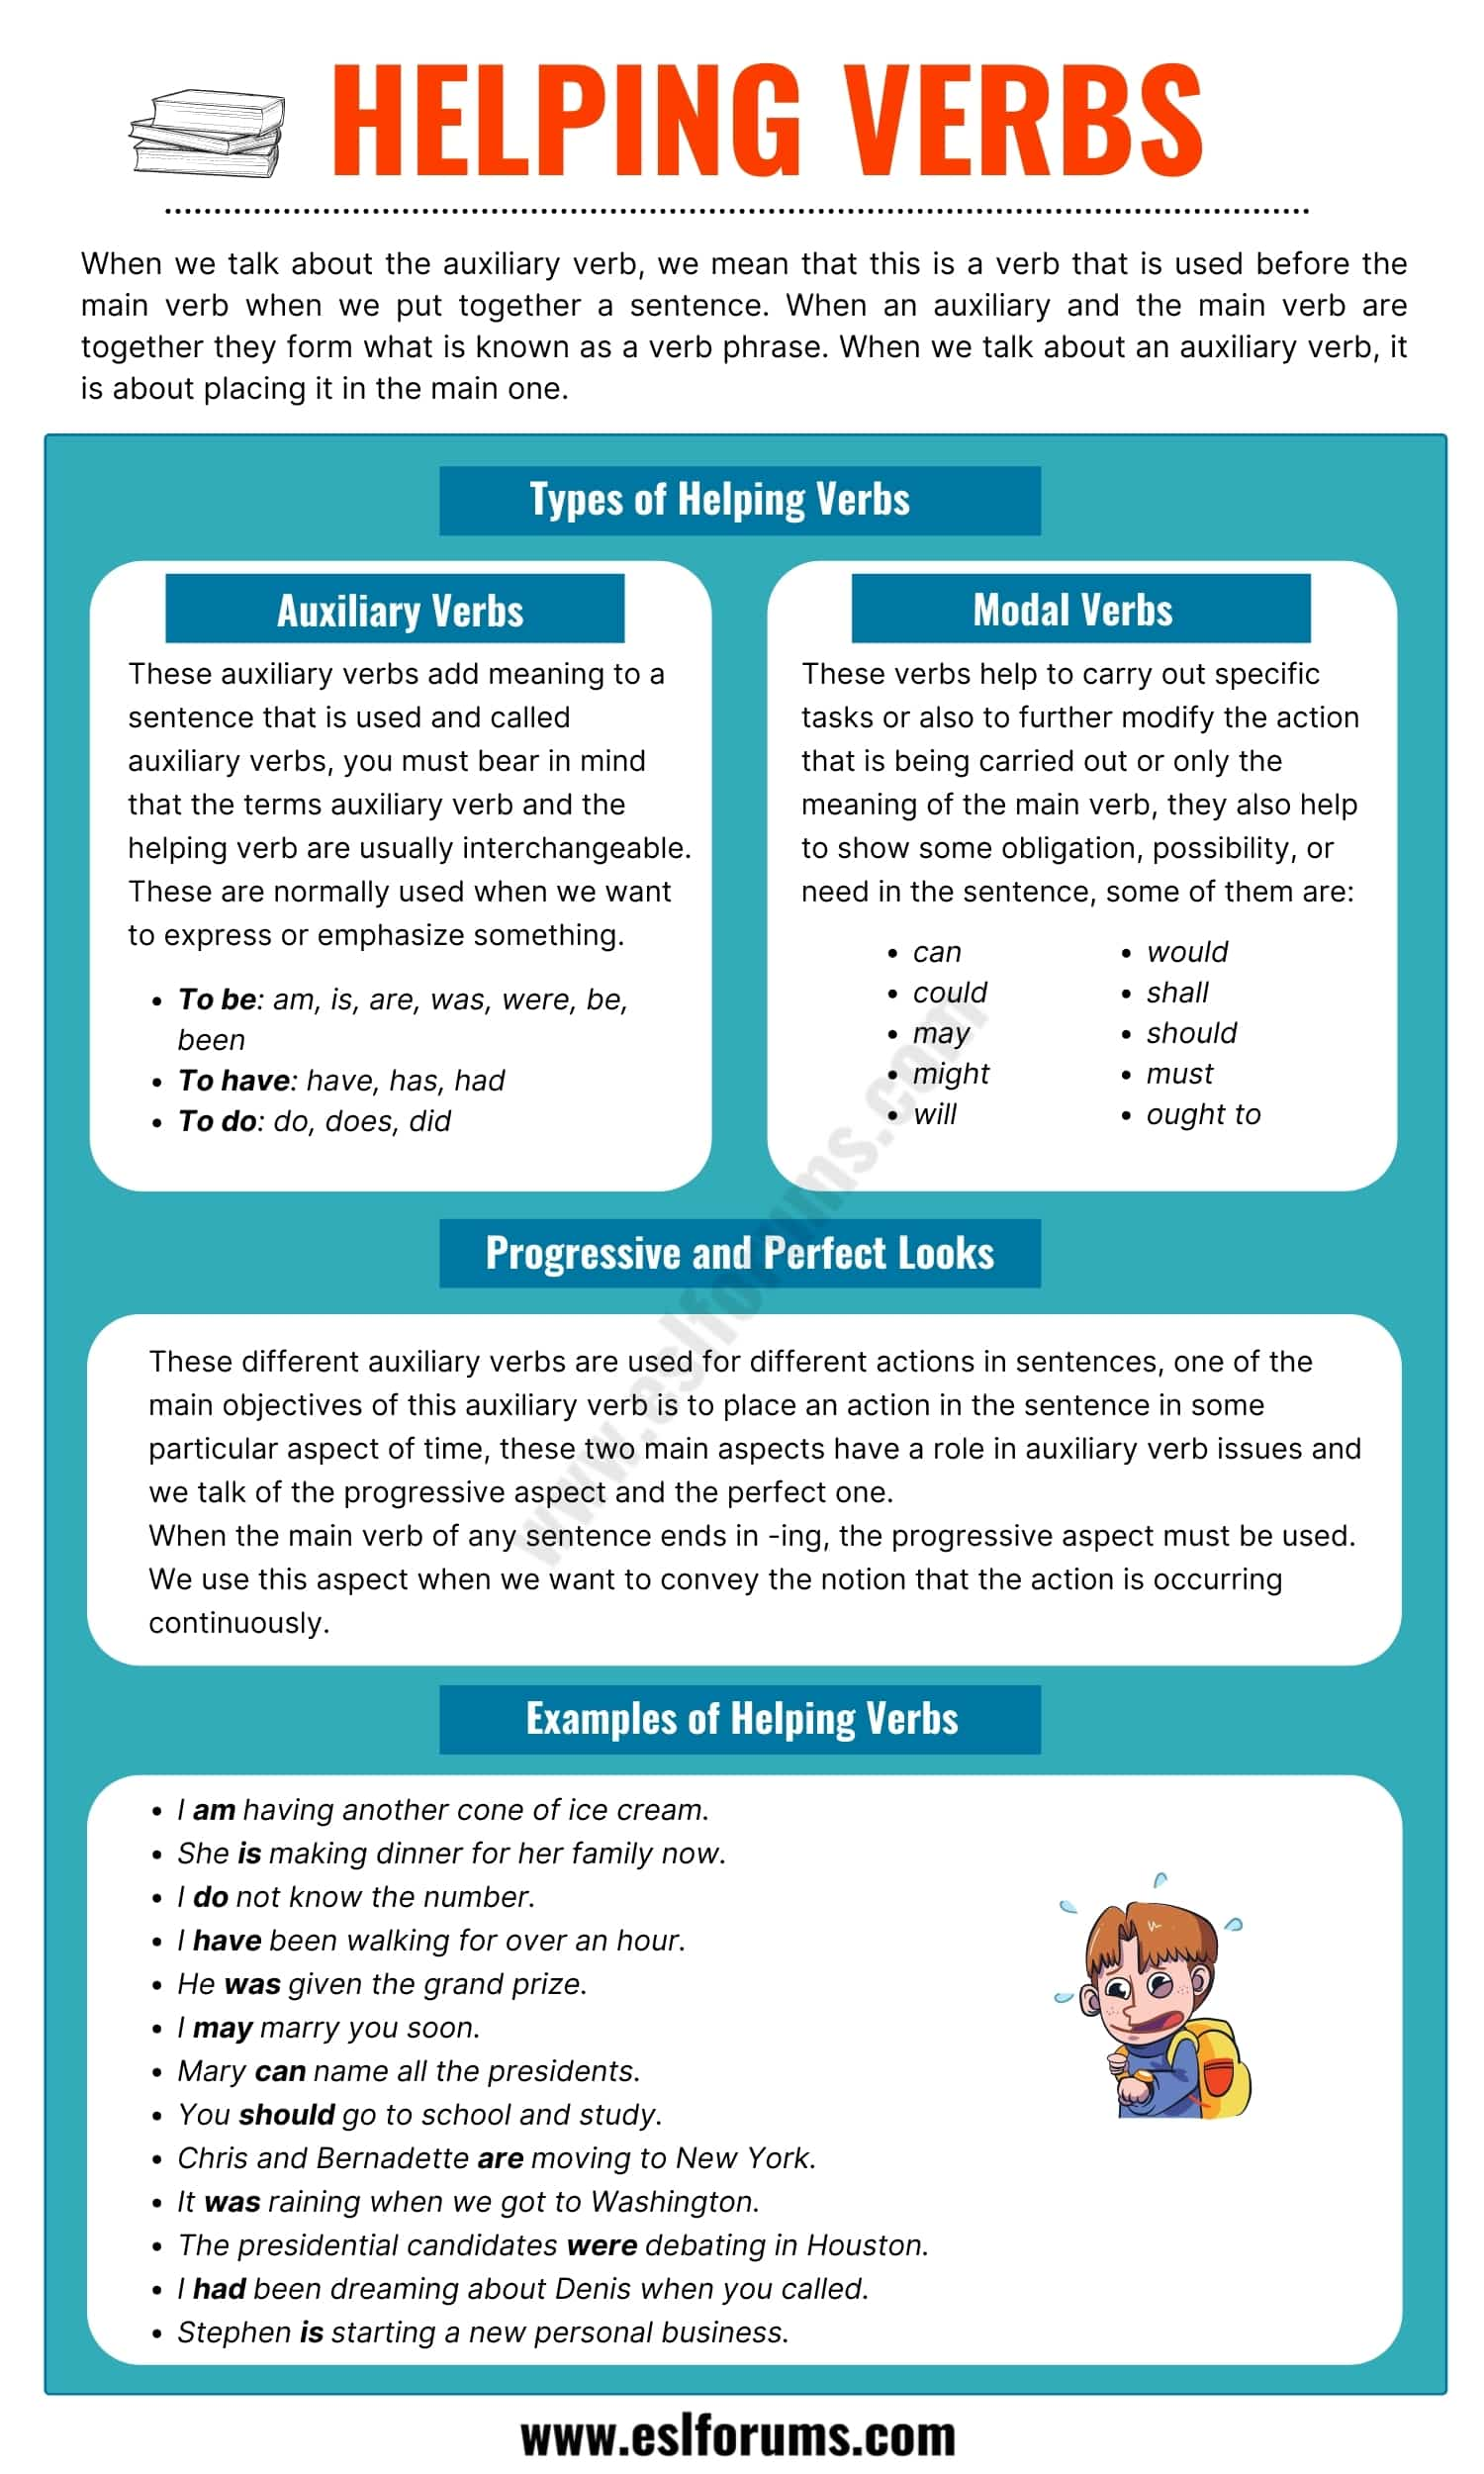 Helping Verbs: Definition, Types and Some Useful Examples